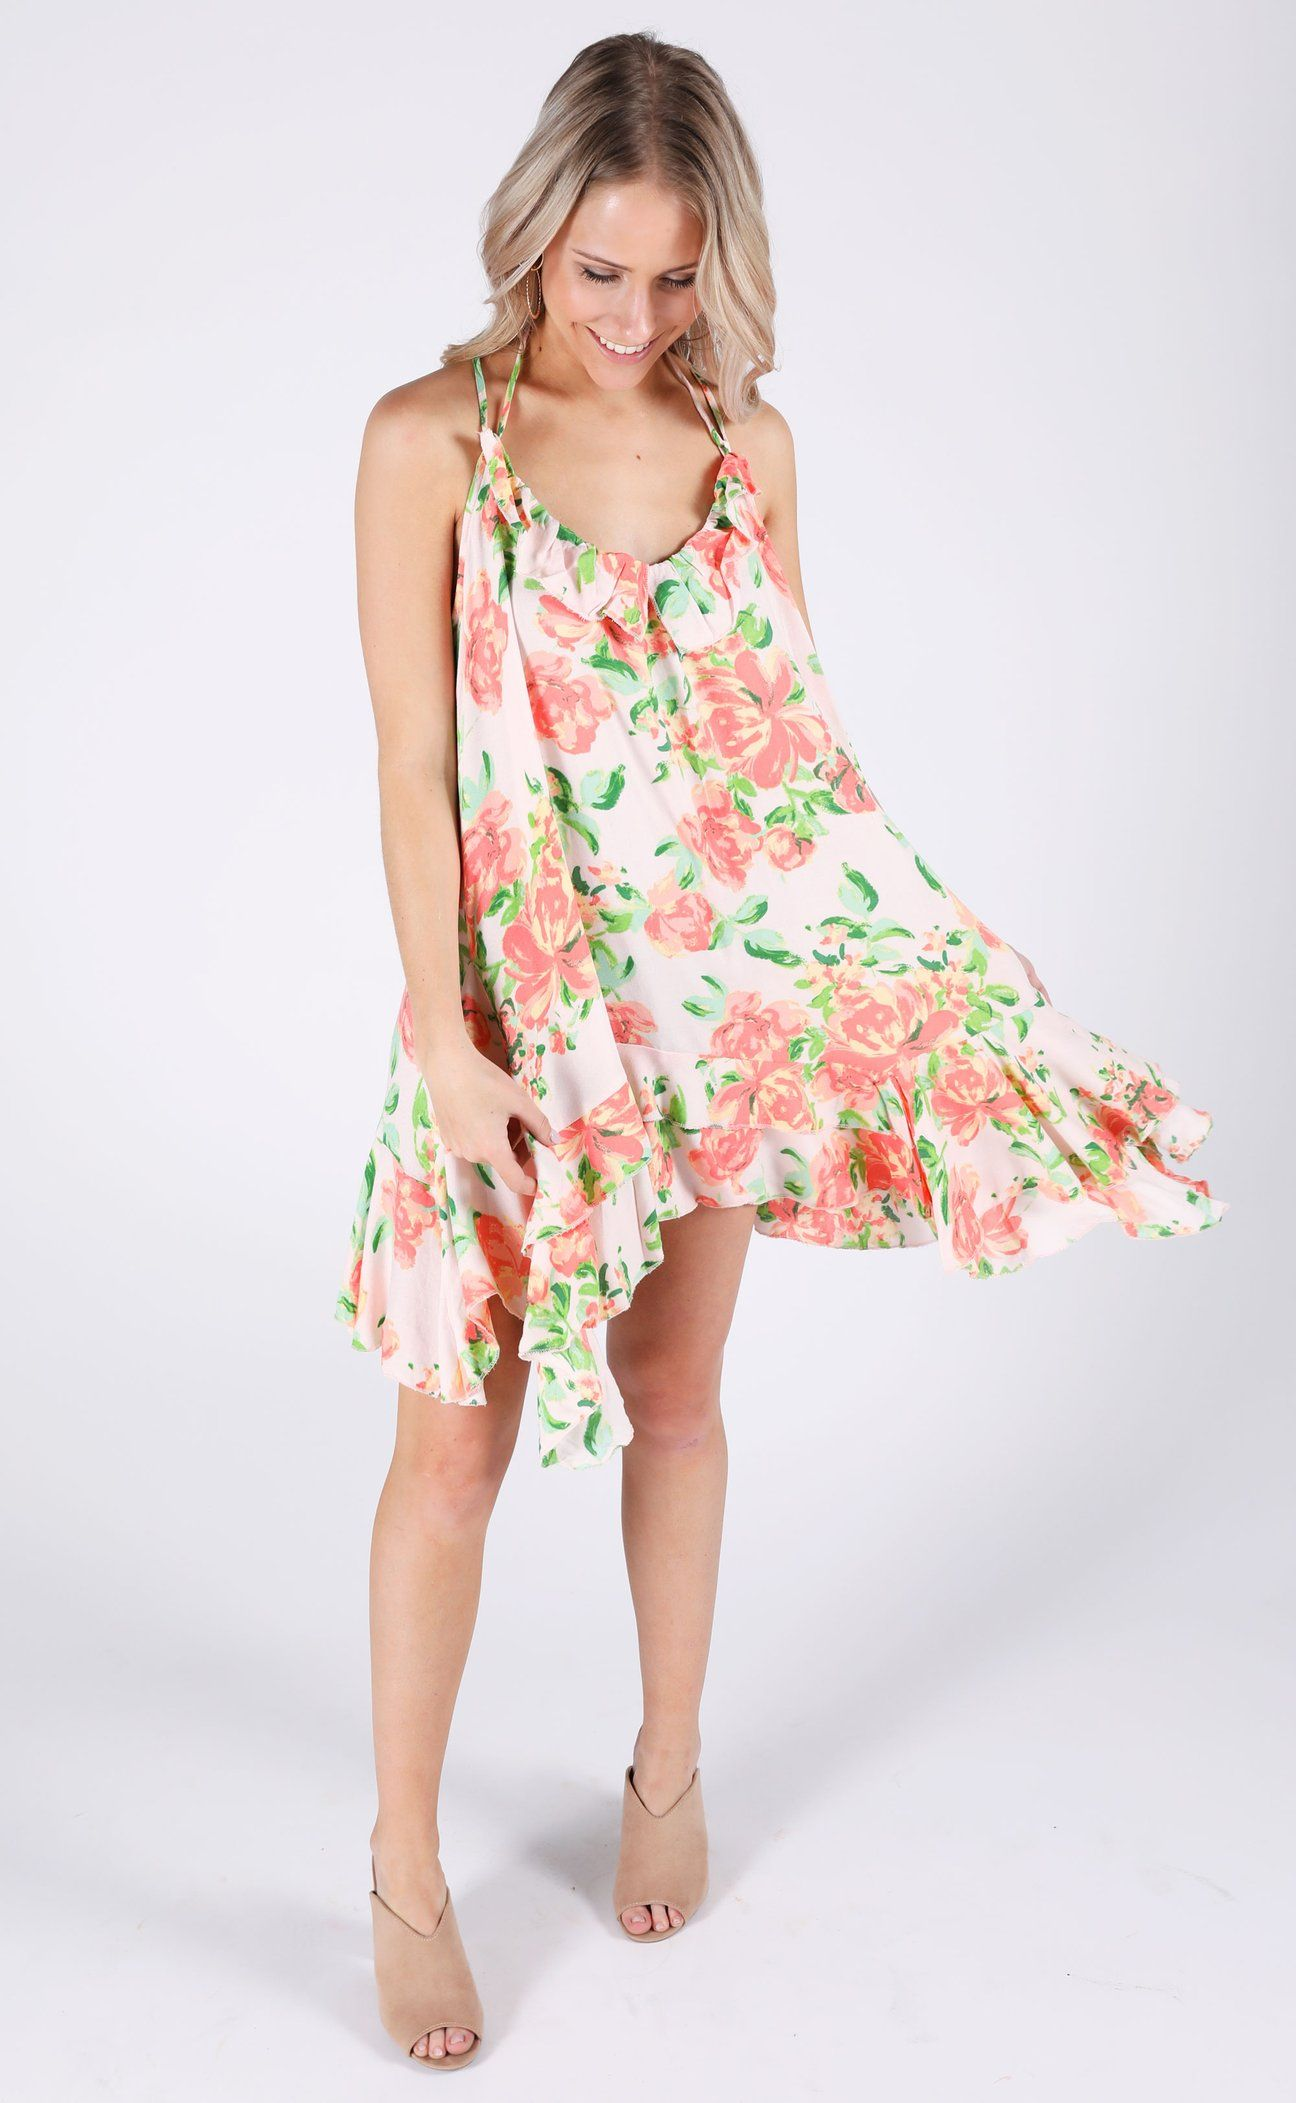 28555bf8b6a The perfect flirty floral dress for any spring event! It features a cool  strappy back